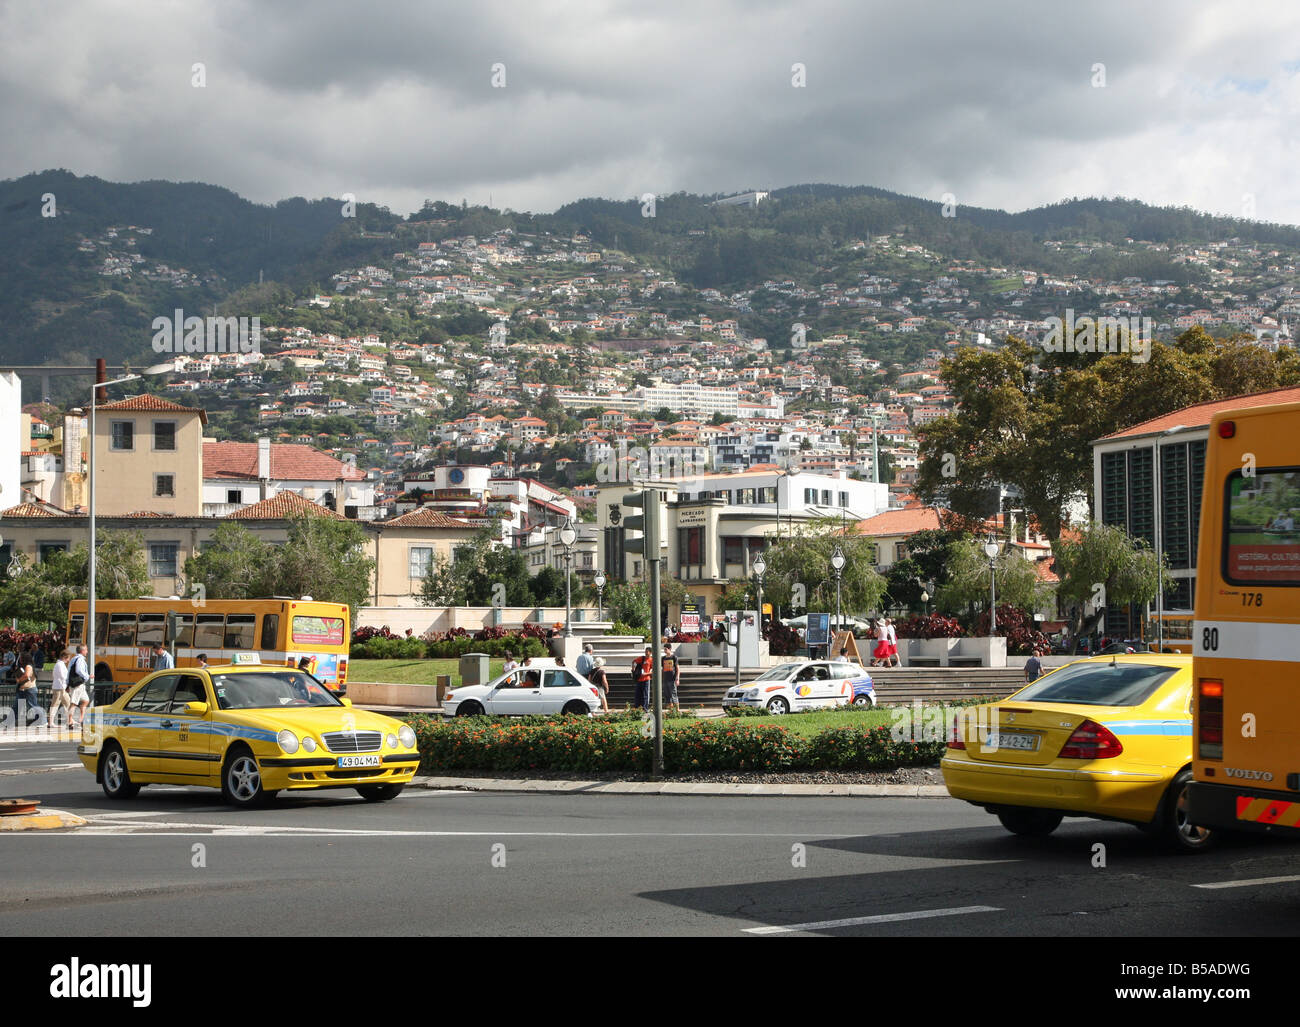 View Of Houses On The Hillside At Praca Da Autonomia Funchal Stock Photo Royalty Free Image